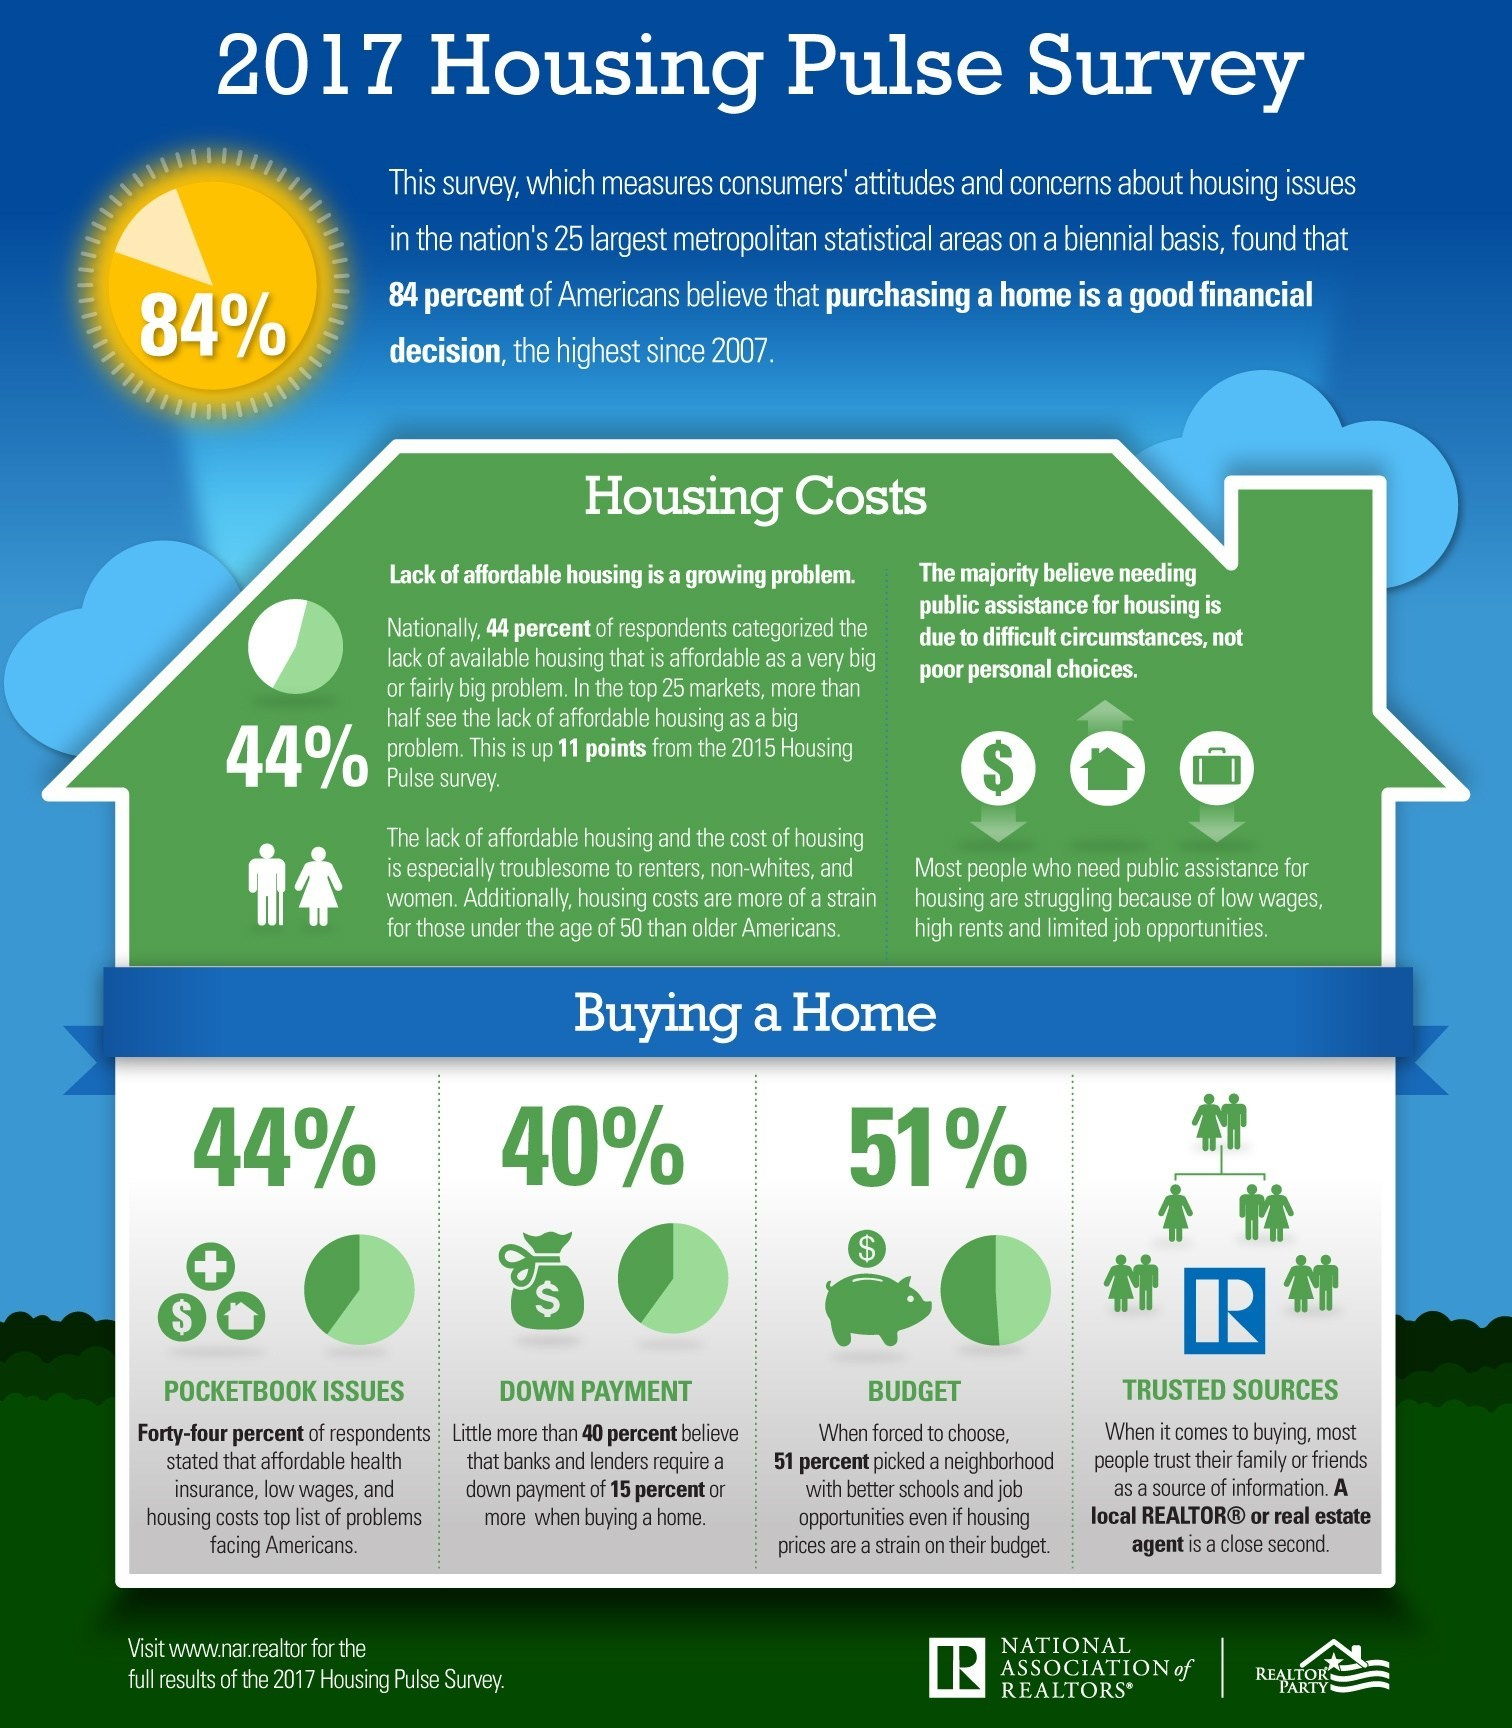 84 percent of Americans see homeownership as a good investment, according to the National Association of Realtors®' 2017 National Housing Pulse Survey.